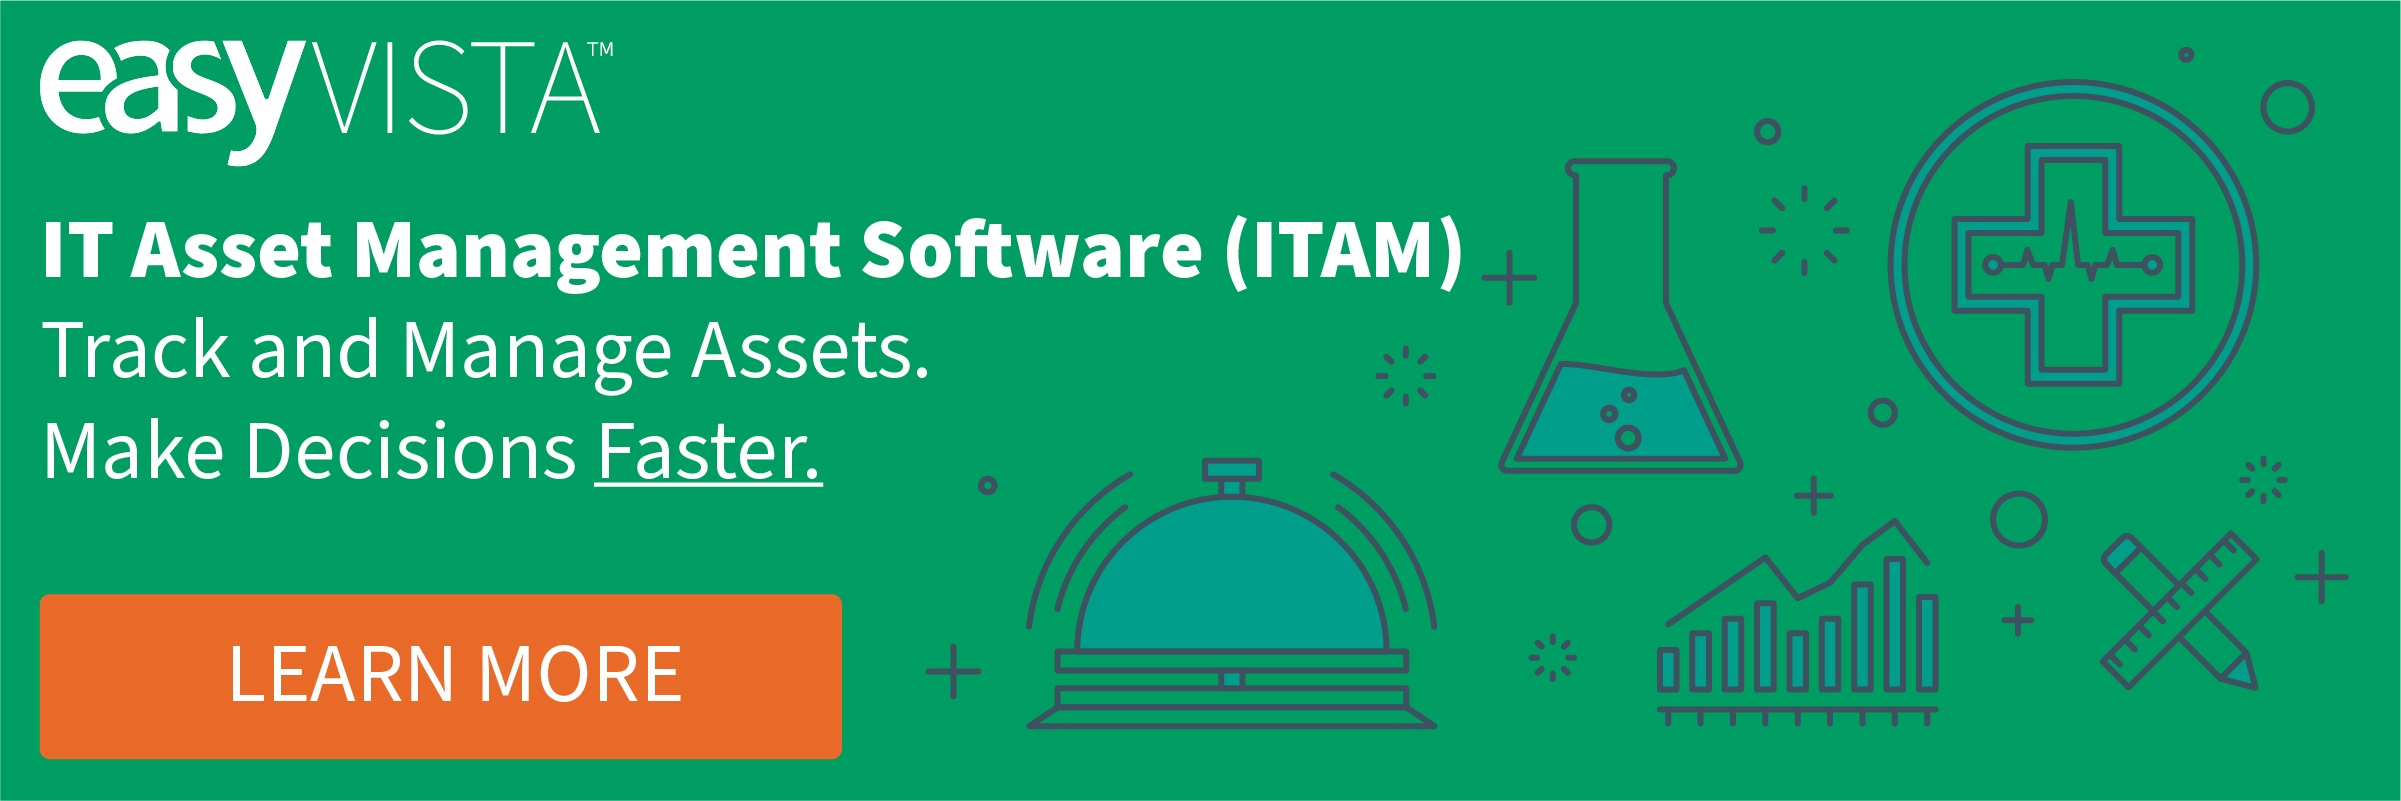 IT Asset Management Software (ITAM)